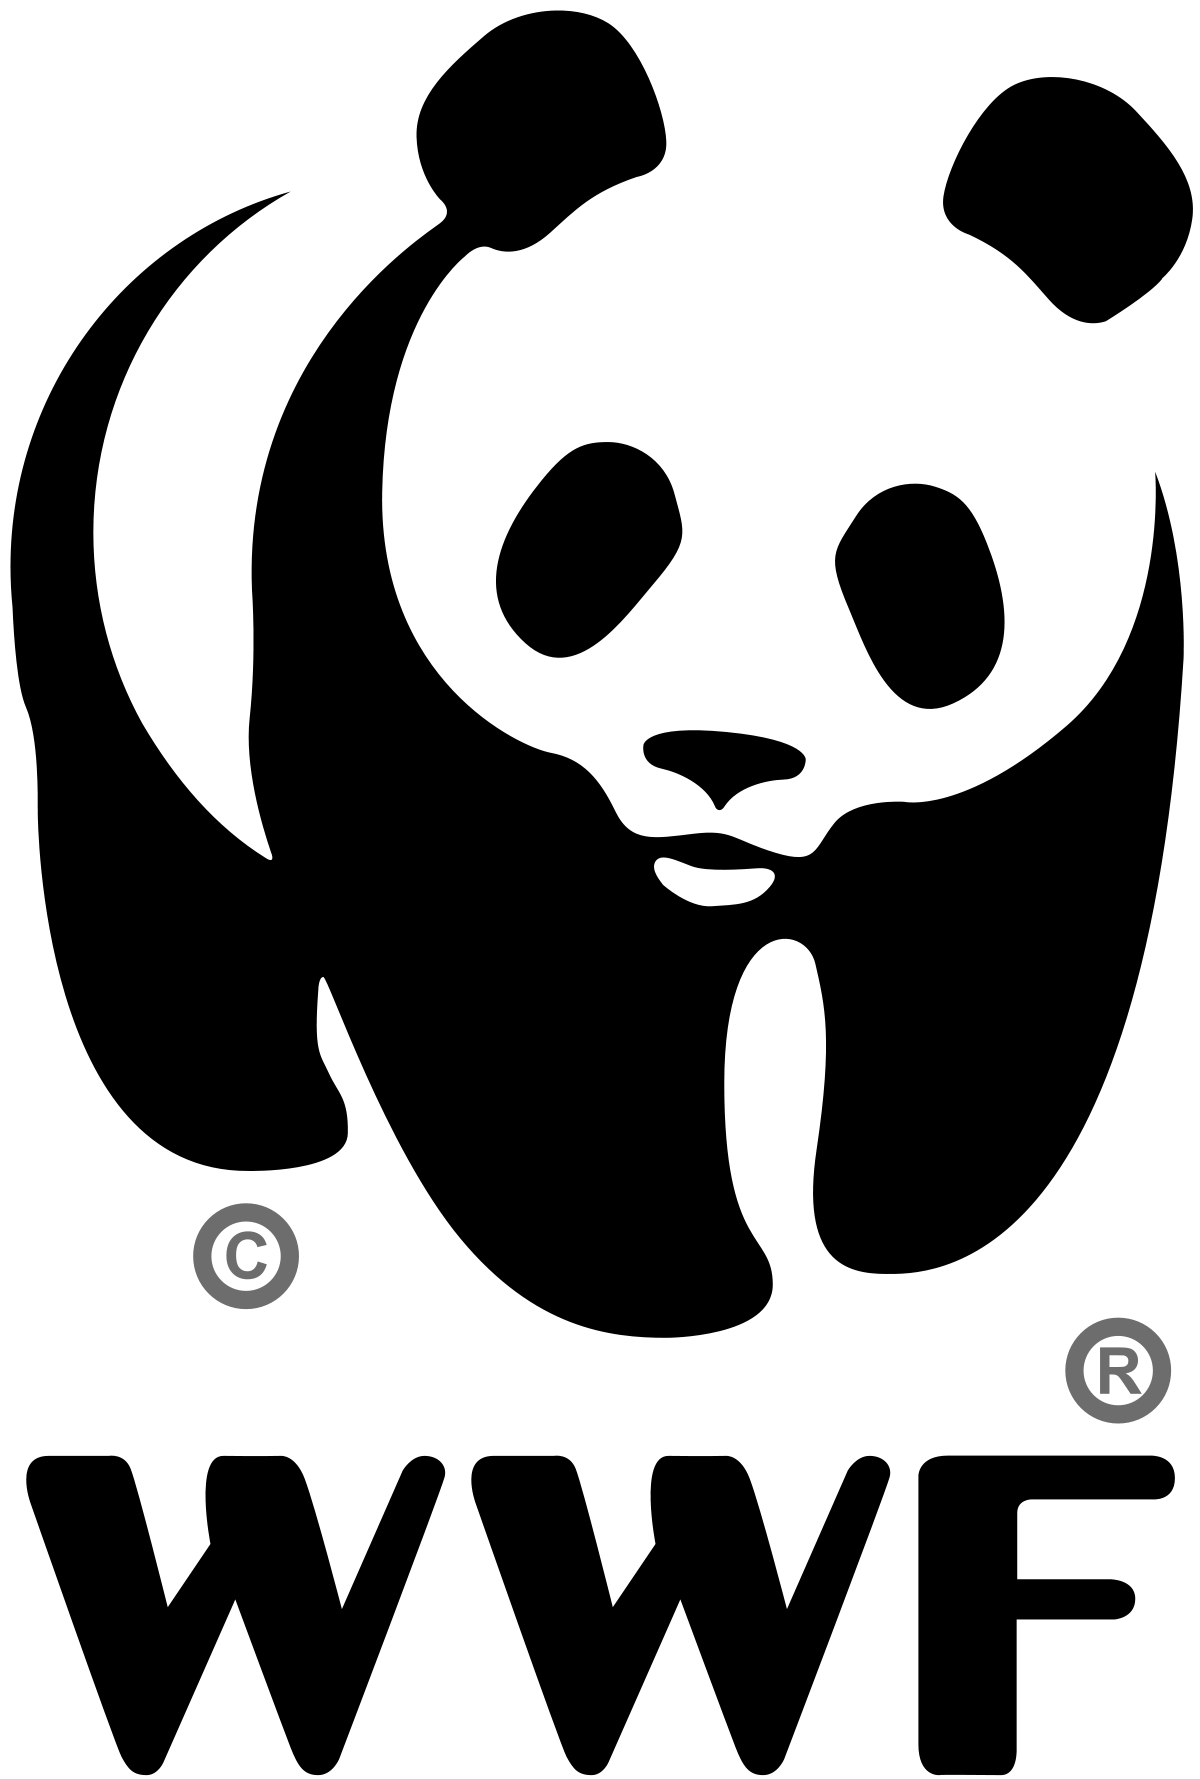 Wwf panda png. World wide fund for